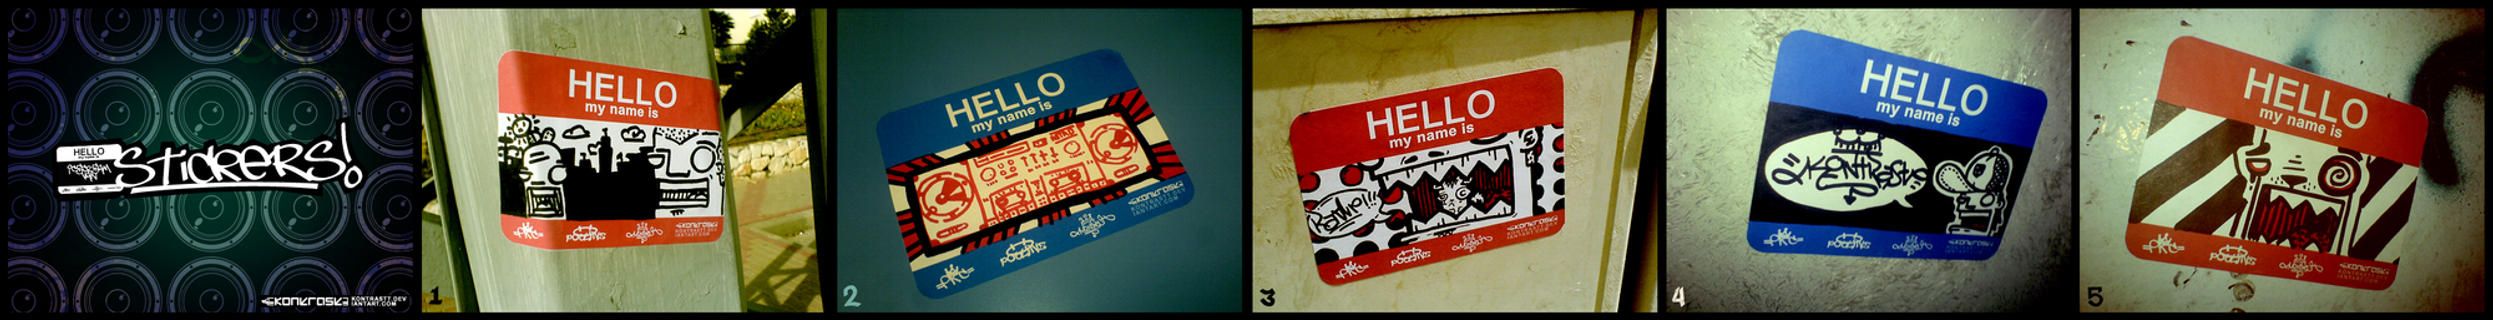 Hello.My.Name.Is.Stickers. by kontrastt